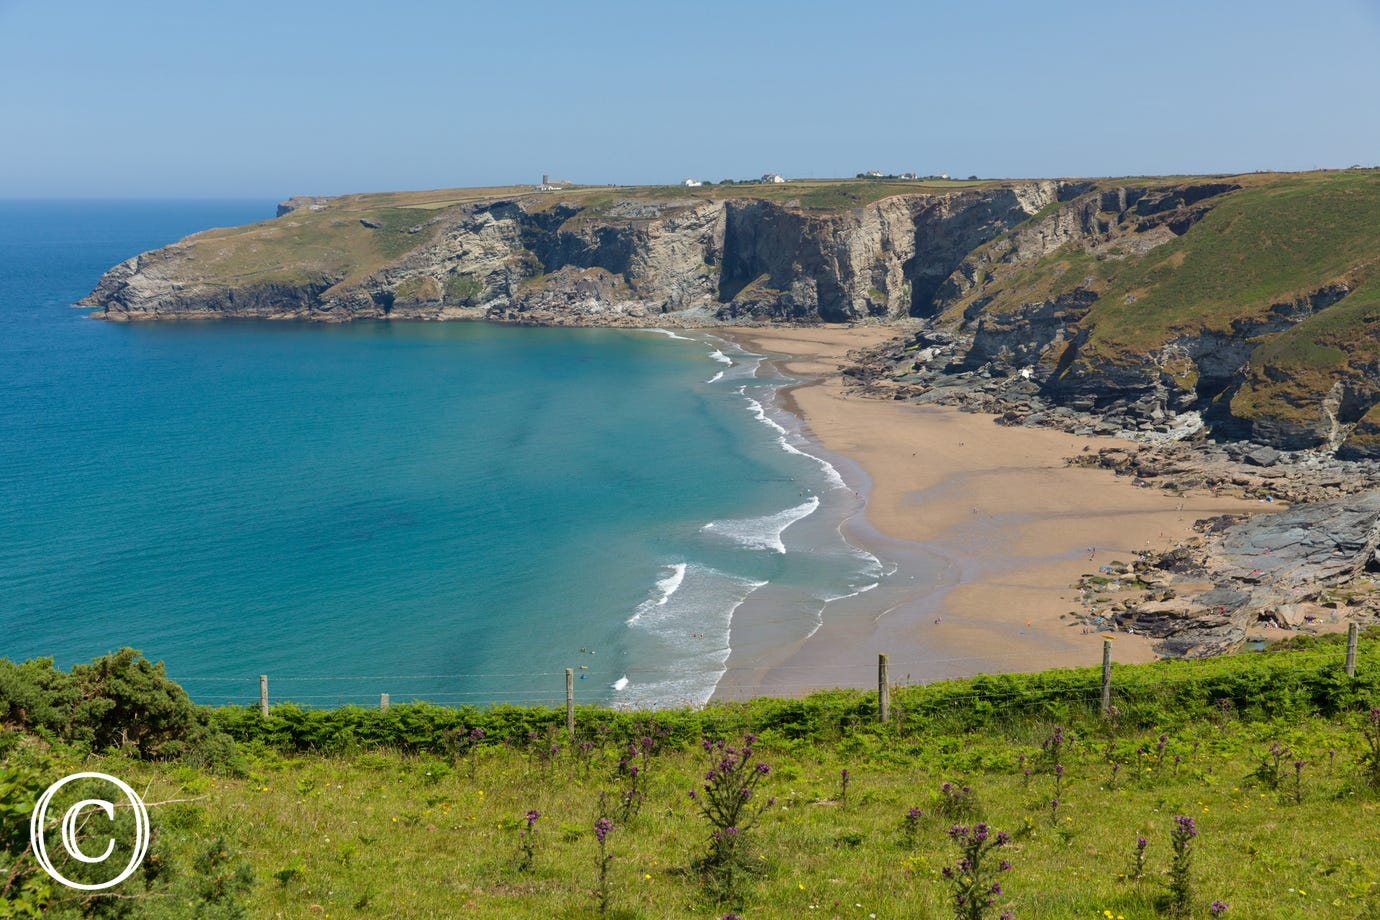 The beautiful sandy bay of Trebarwith Strand is less than 10 minutes